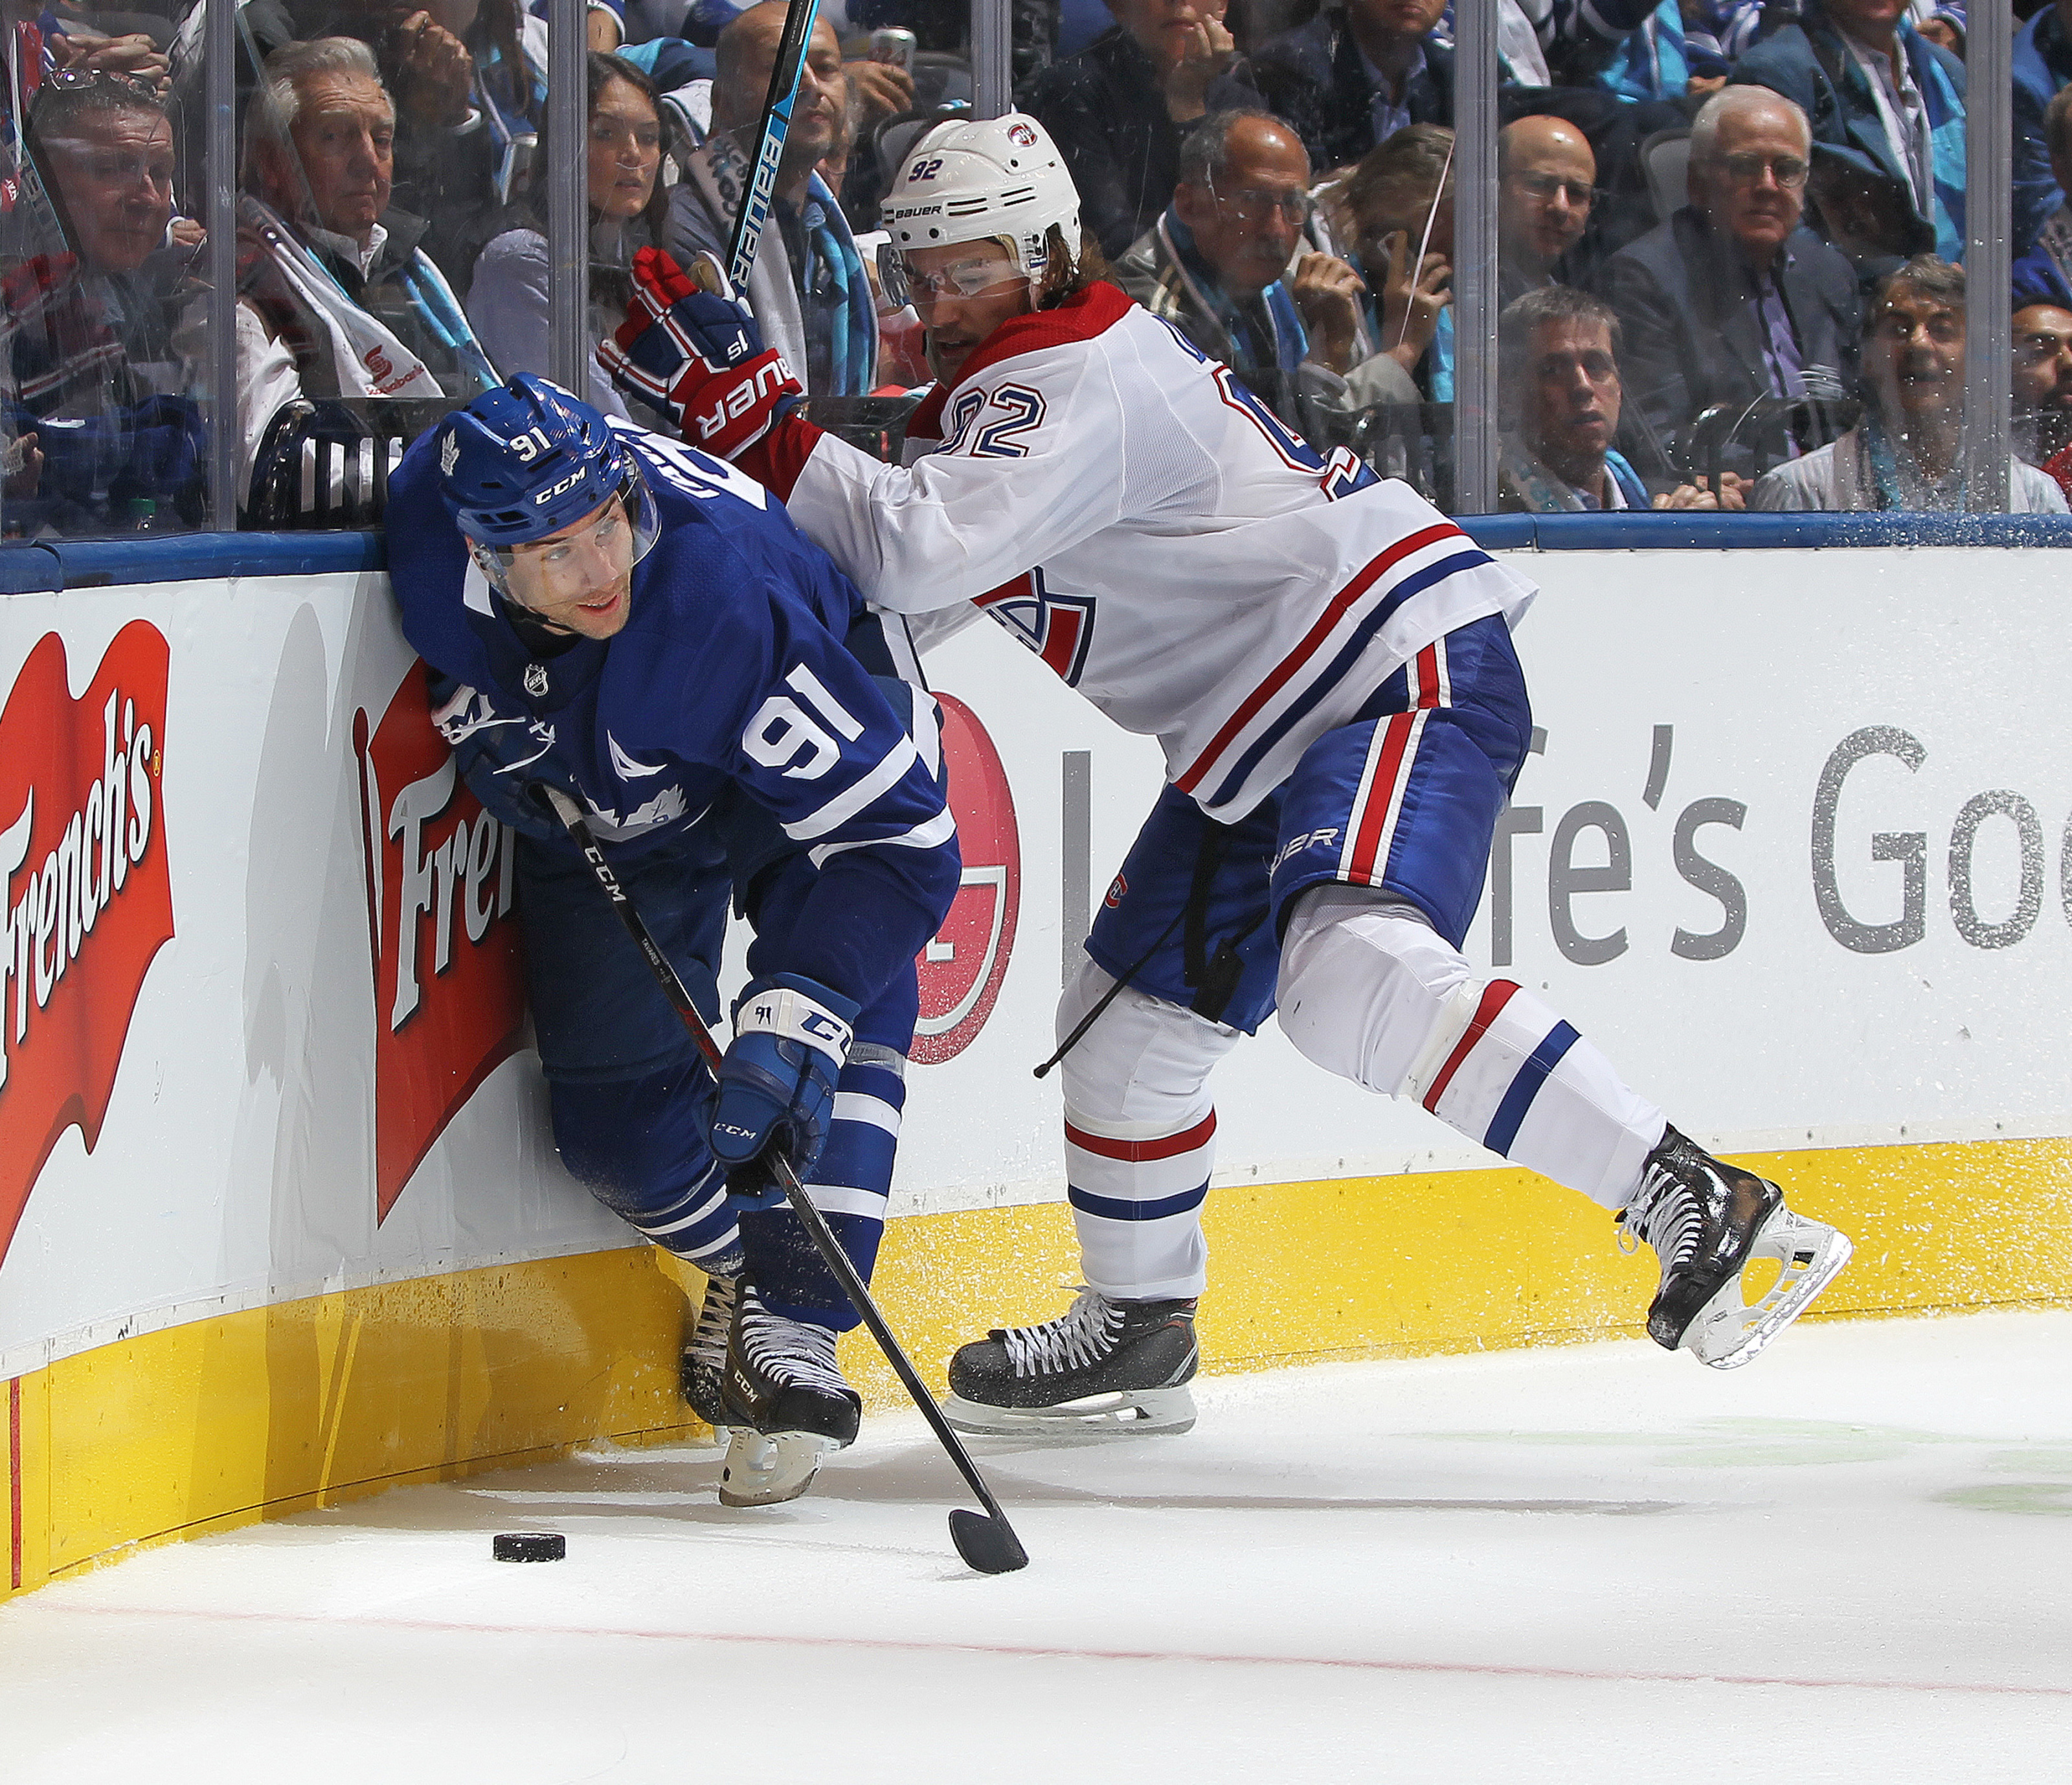 Montreal Canadiens Take On The Leafs Main Squad Amidst Trade Rumours